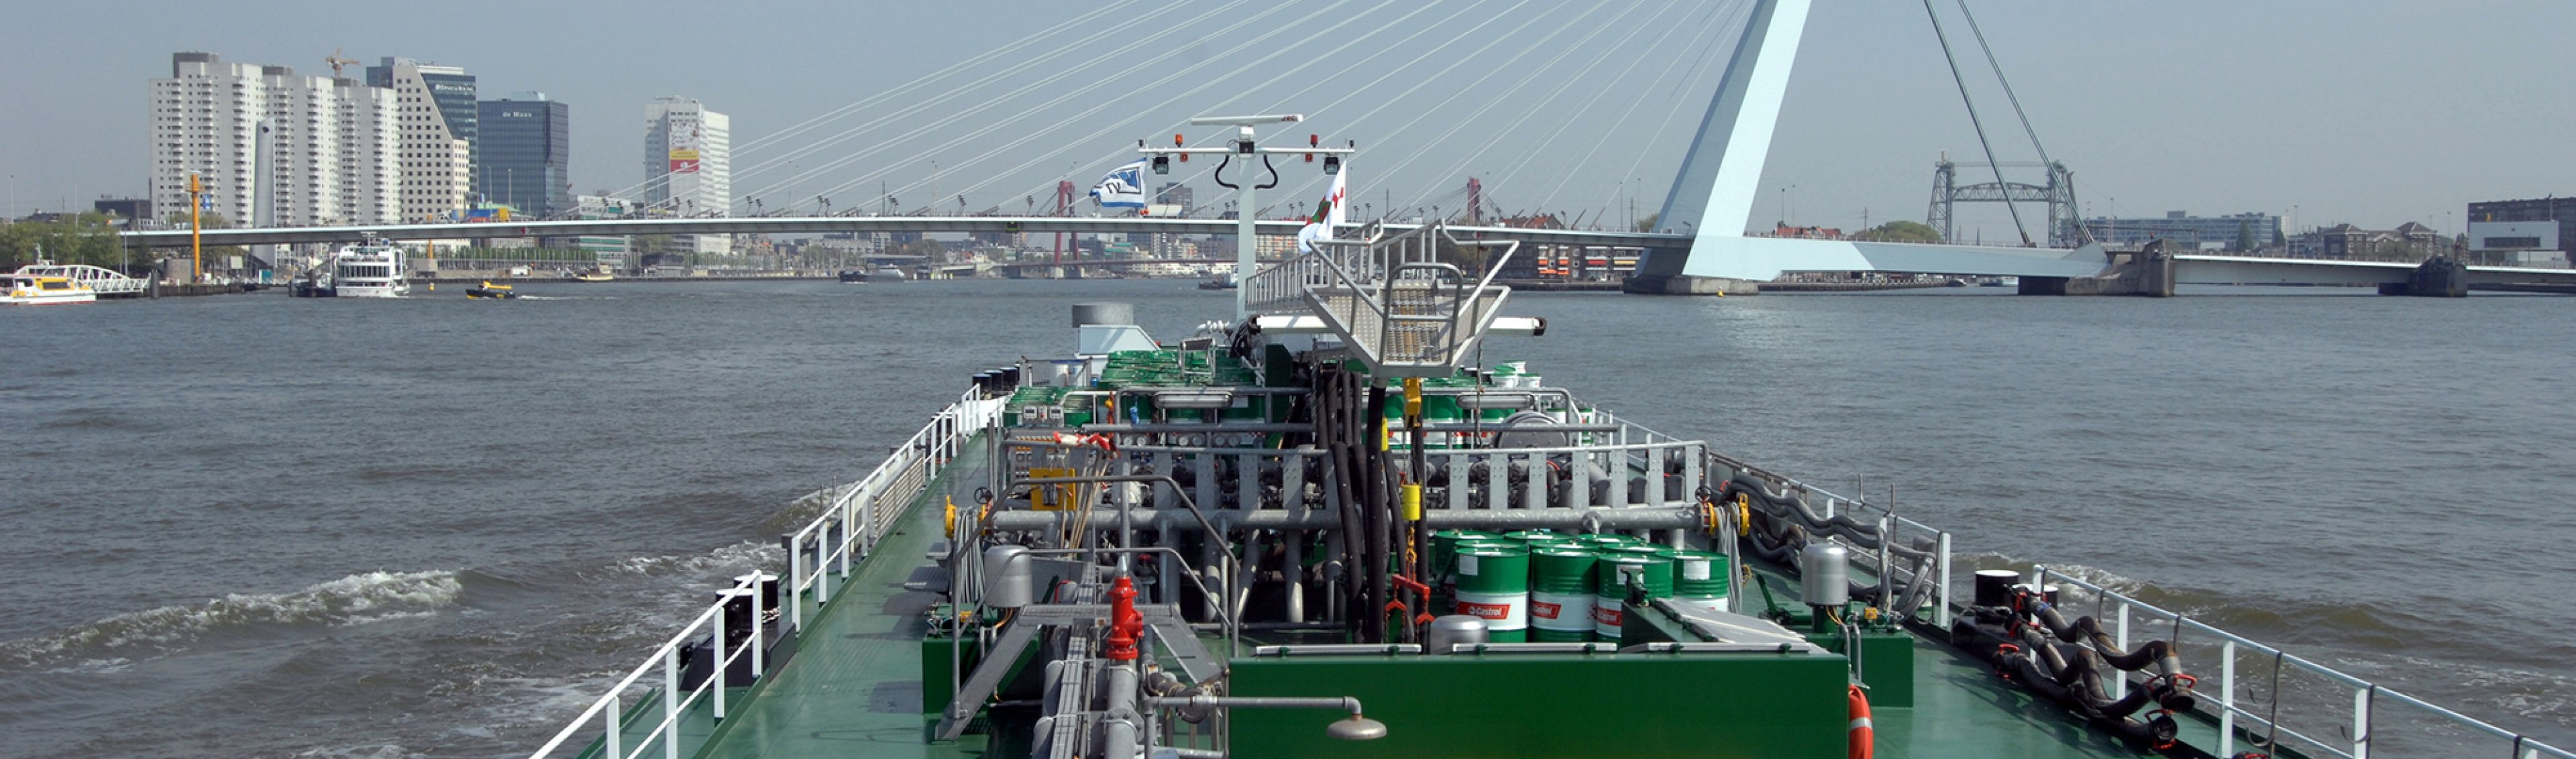 Large product barge m.t.'s Vanora passing through Rotterdam on the River Waal (Rhine) system delivering bulk marine lubricants to international shipping industry customers, Netherlands.